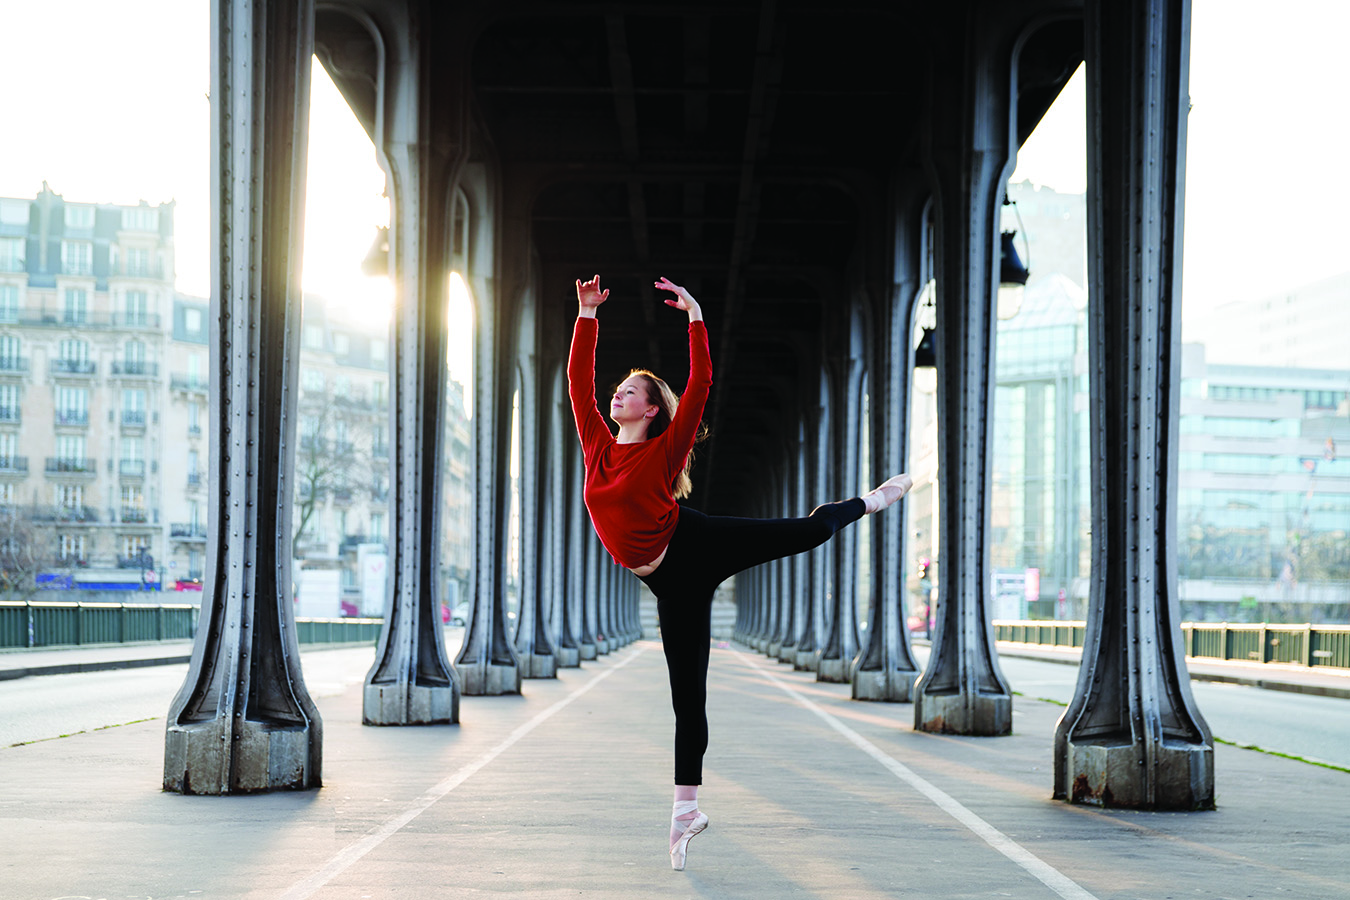 Paris ballet dance photographer